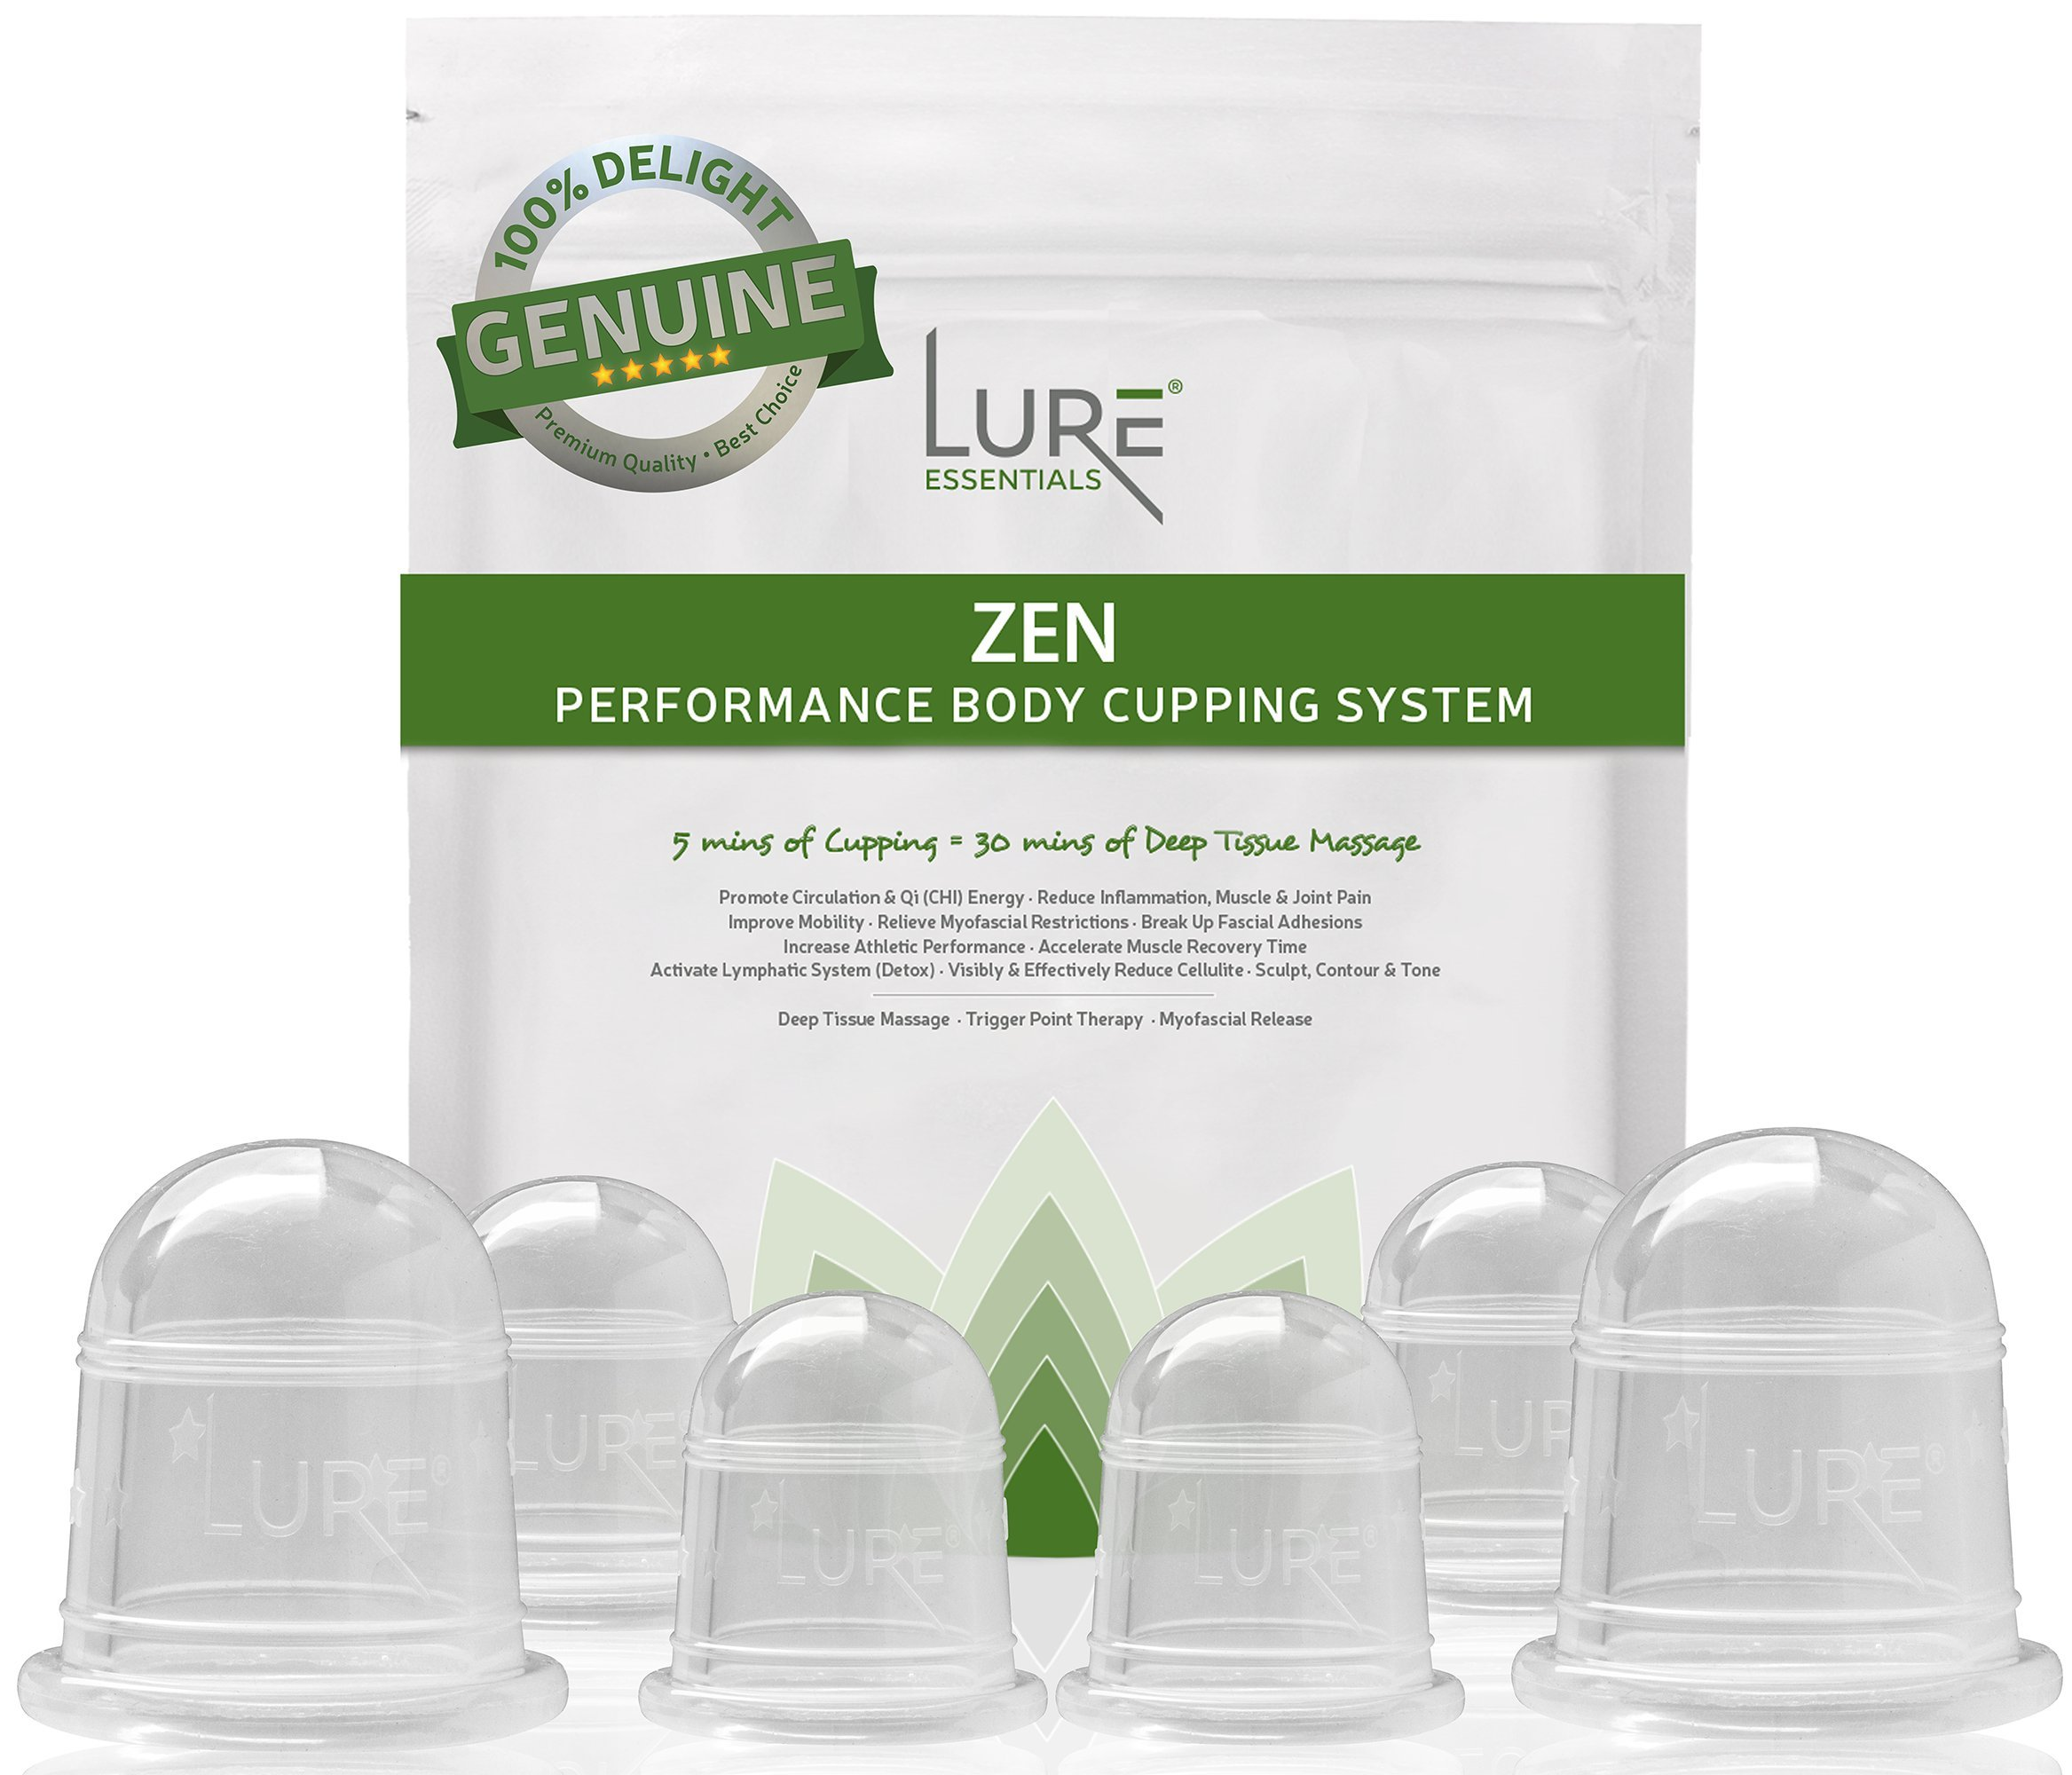 Zen Cupping Therapy Set 6 Massage Cups for Cellulite, Fascia and Natural Pain Relief with Professional e-BOOK - Results Driven - Home and Experienced Bodywork Use with Oil or Body Wash